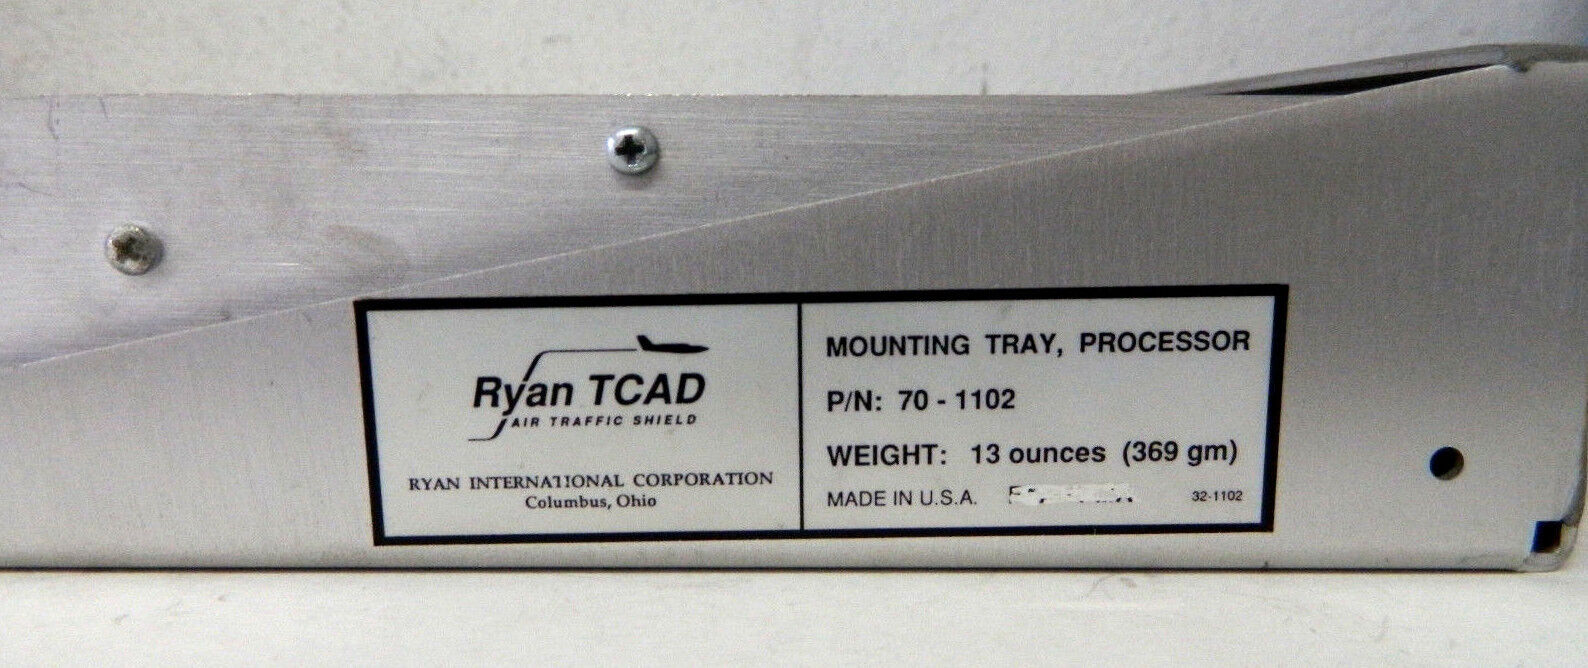 Ryan TCAD ATS-9000 Processor 70-1101 + Mounting Tray, Processor 70-1102